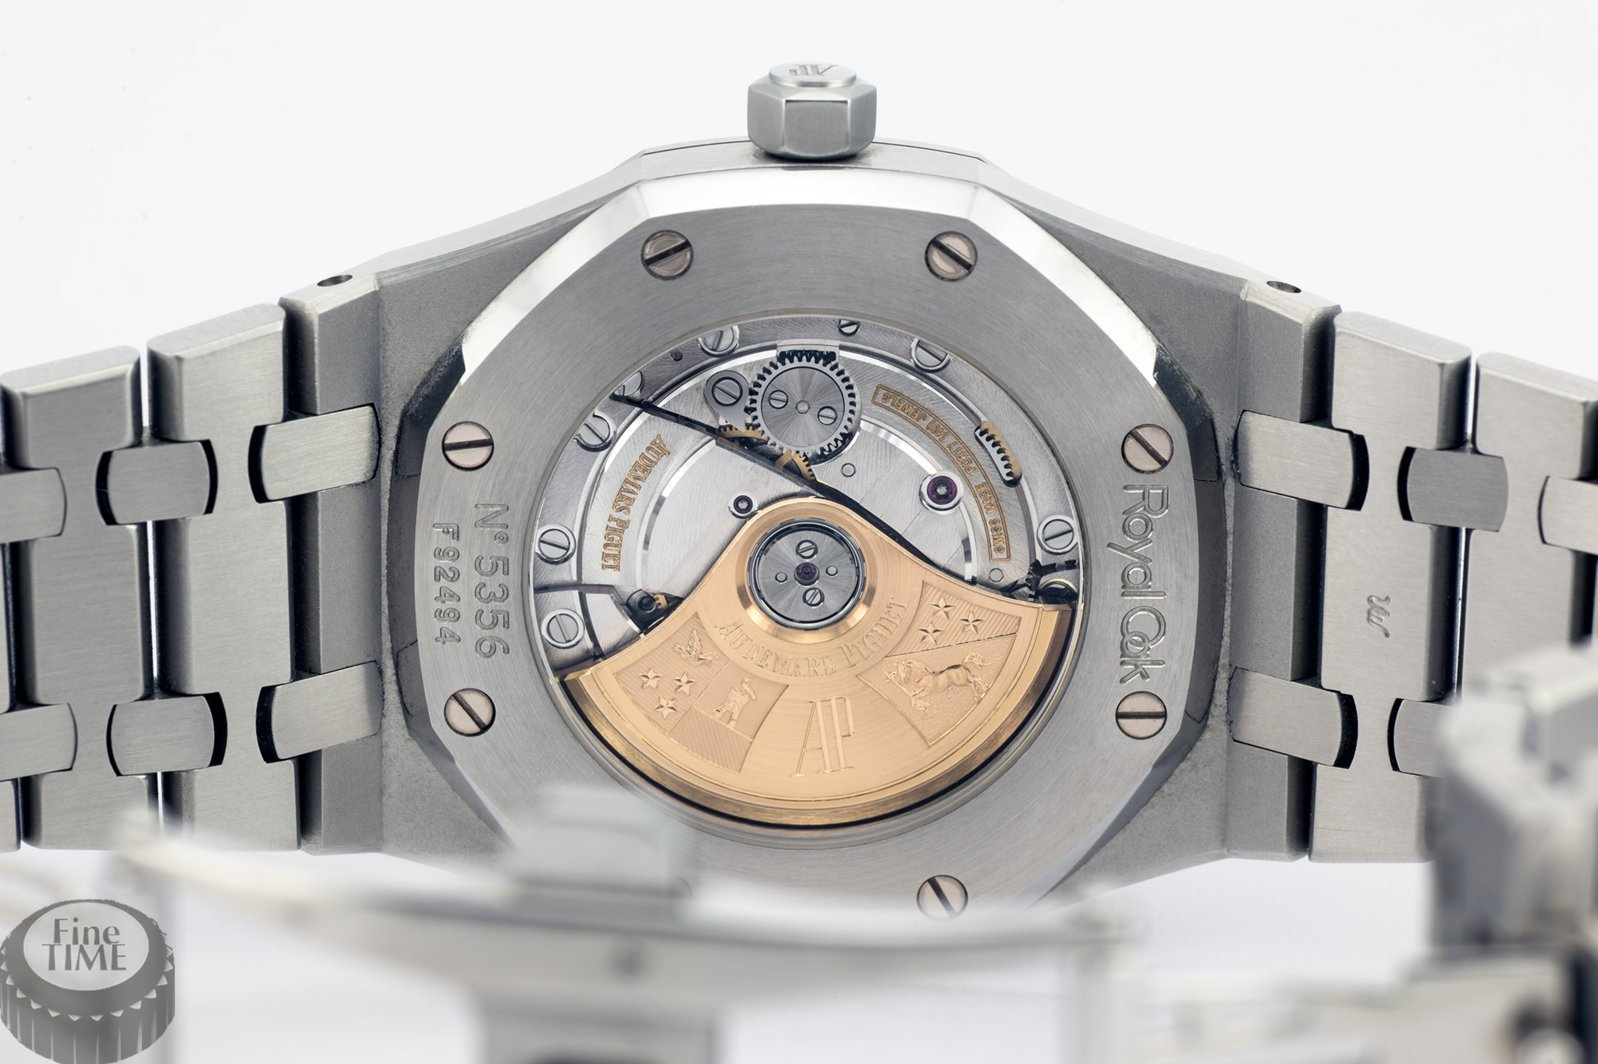 audemars-piguet-royal-oak-date-15300st-oo-1220st-01-02.jpg